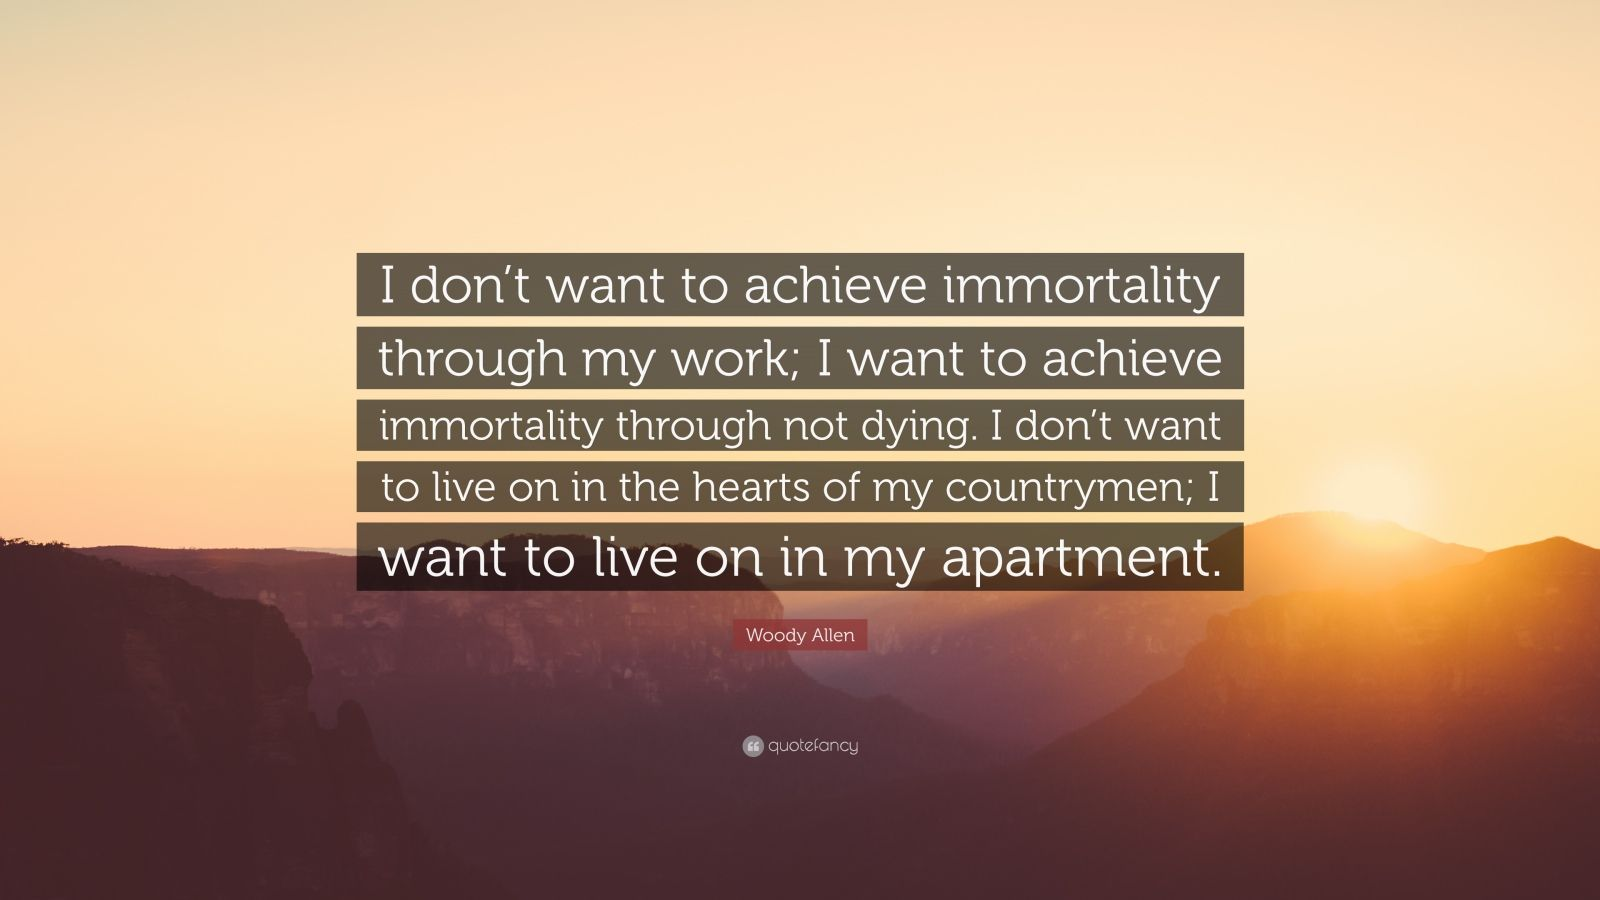 """Woody Allen Quote: """"I don't want to achieve immortality through my work; I want to achieve immortality through not dying. I don't want to live on in the hearts of my countrymen; I want to live on in my apartment."""""""